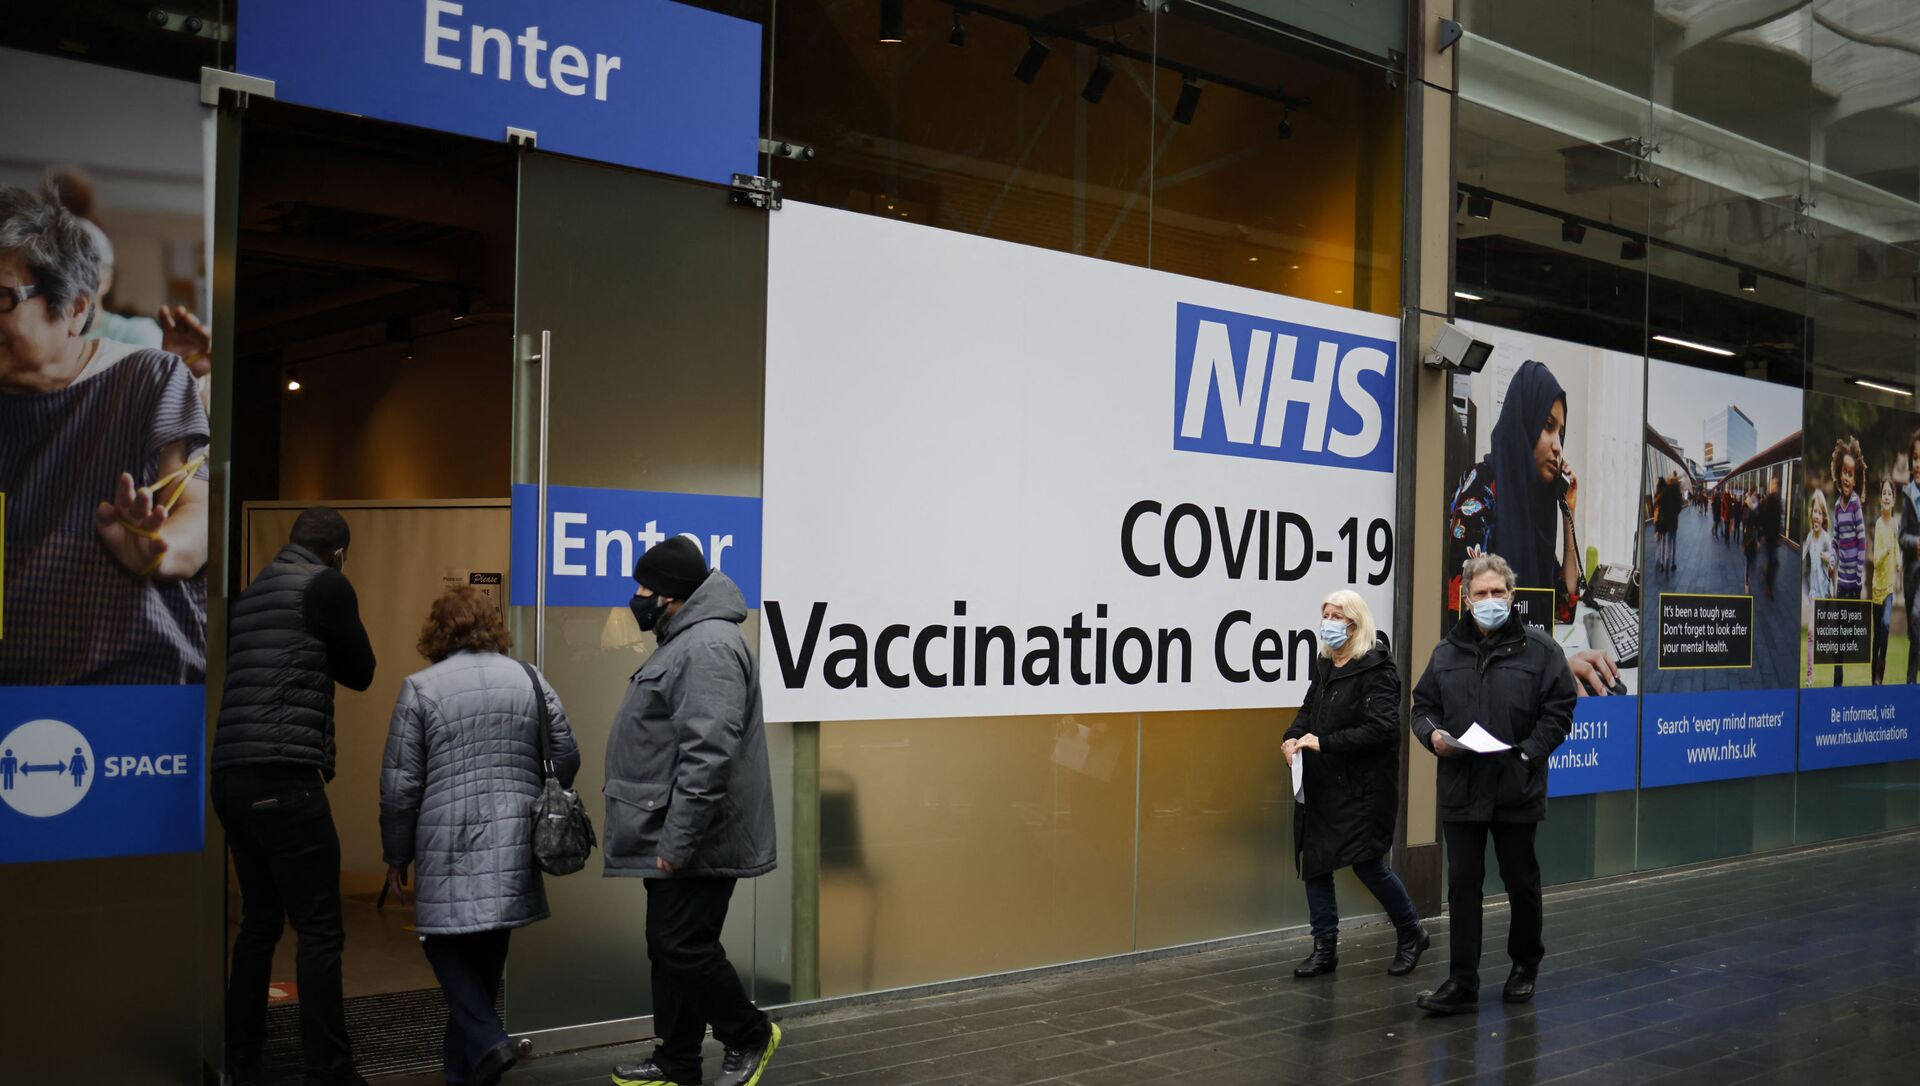 People queue to enter an NHS Covid-19 vaccination centre in Westfield Stratford City shopping centre in east London on February 15, 2021 as Britain's largest ever vaccination programme continues. - Prime Minister Boris Johnson called Britain hitting a target of inoculating 15 million of the most vulnerable people with a first coronavirus jab a significant milestone, as the country prepared for the next phase of its vaccination programme. (Photo by Tolga Akmen / AFP) - Sputnik International, 1920, 31.07.2021